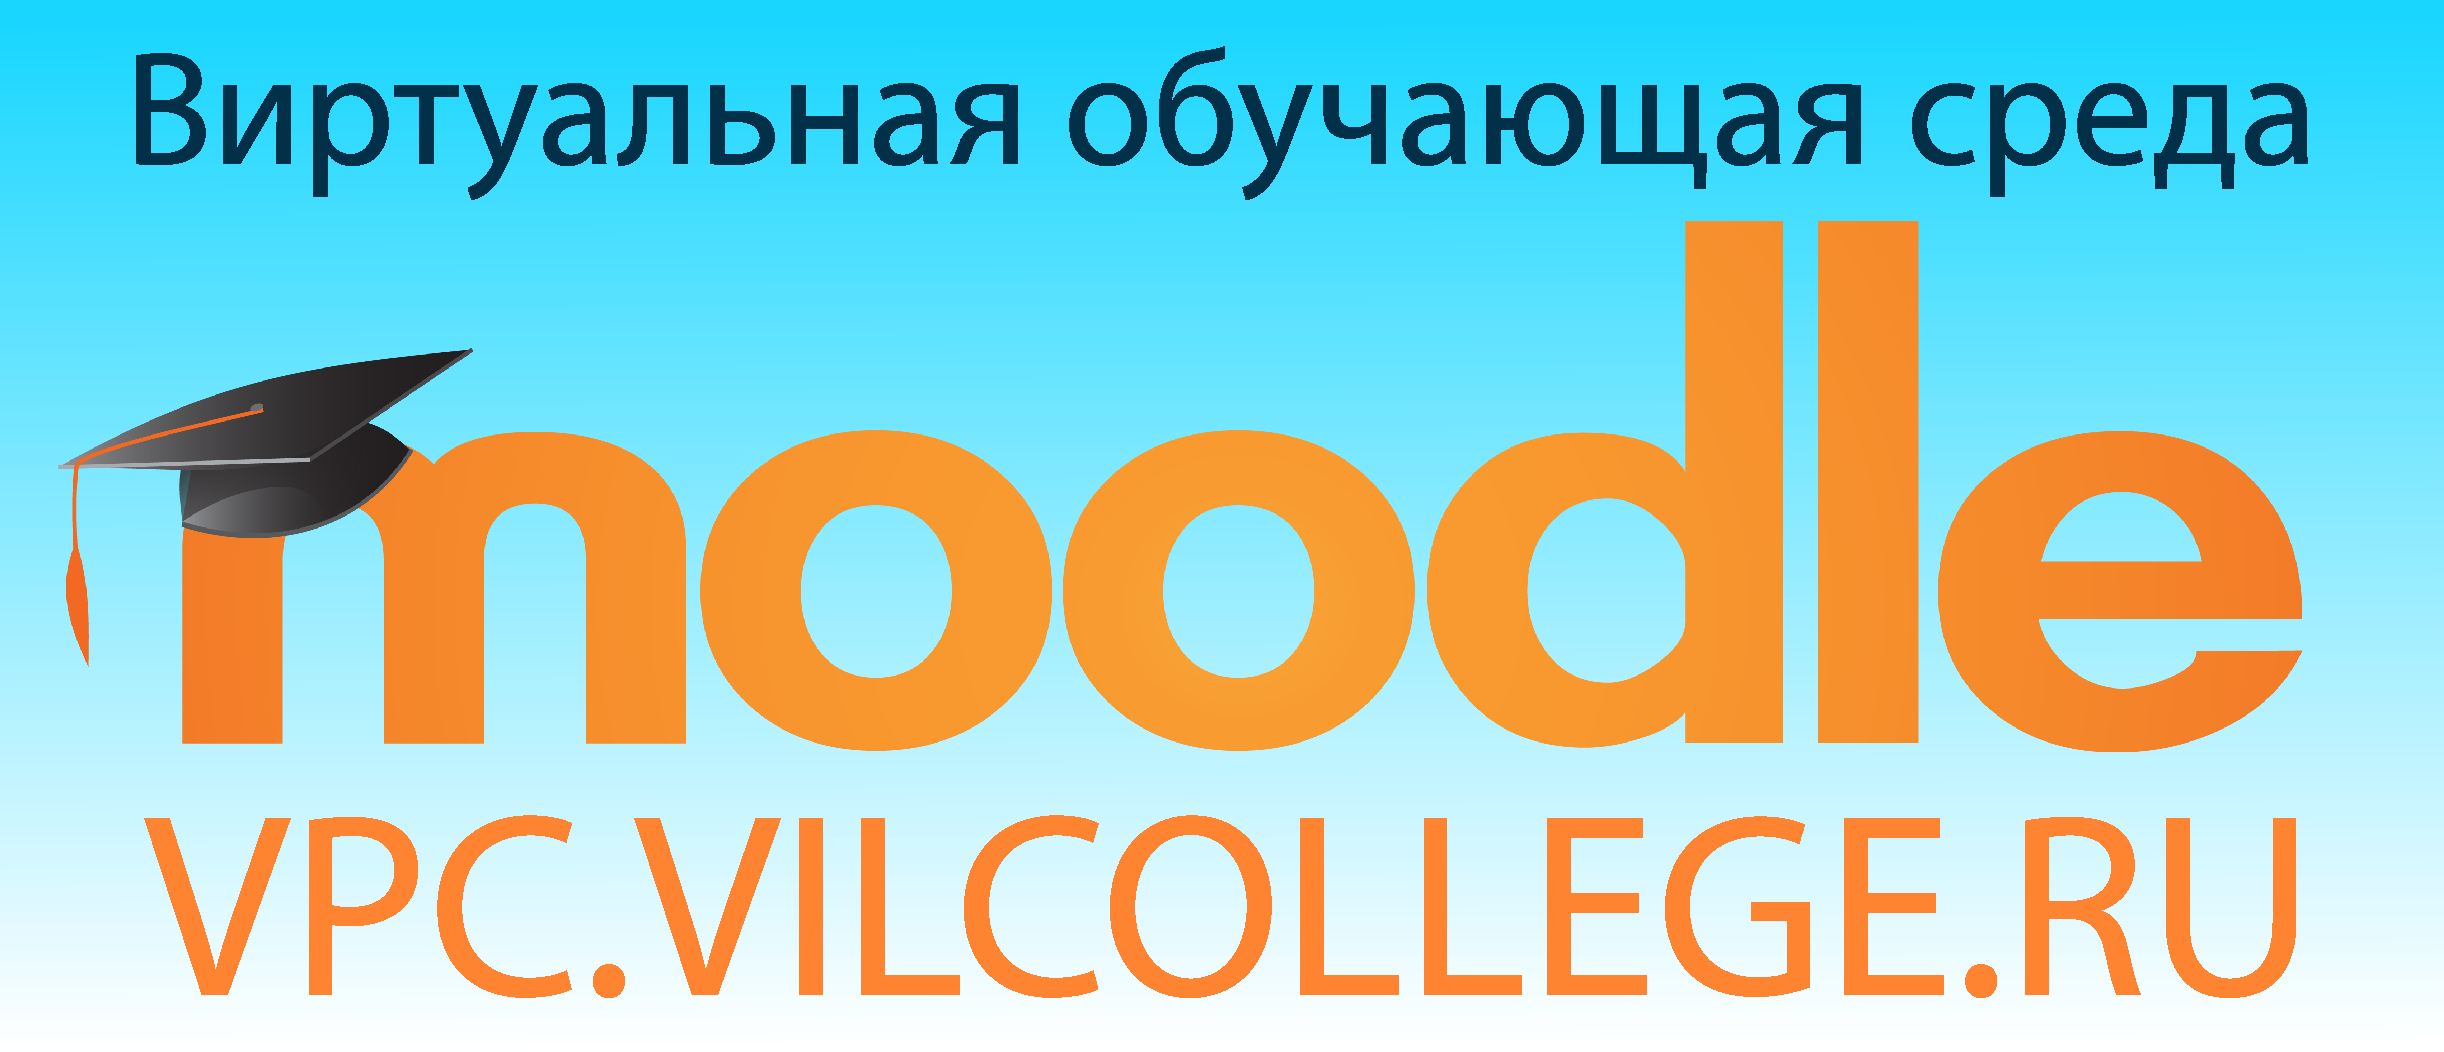 Виртуальная обучающая среда moodle